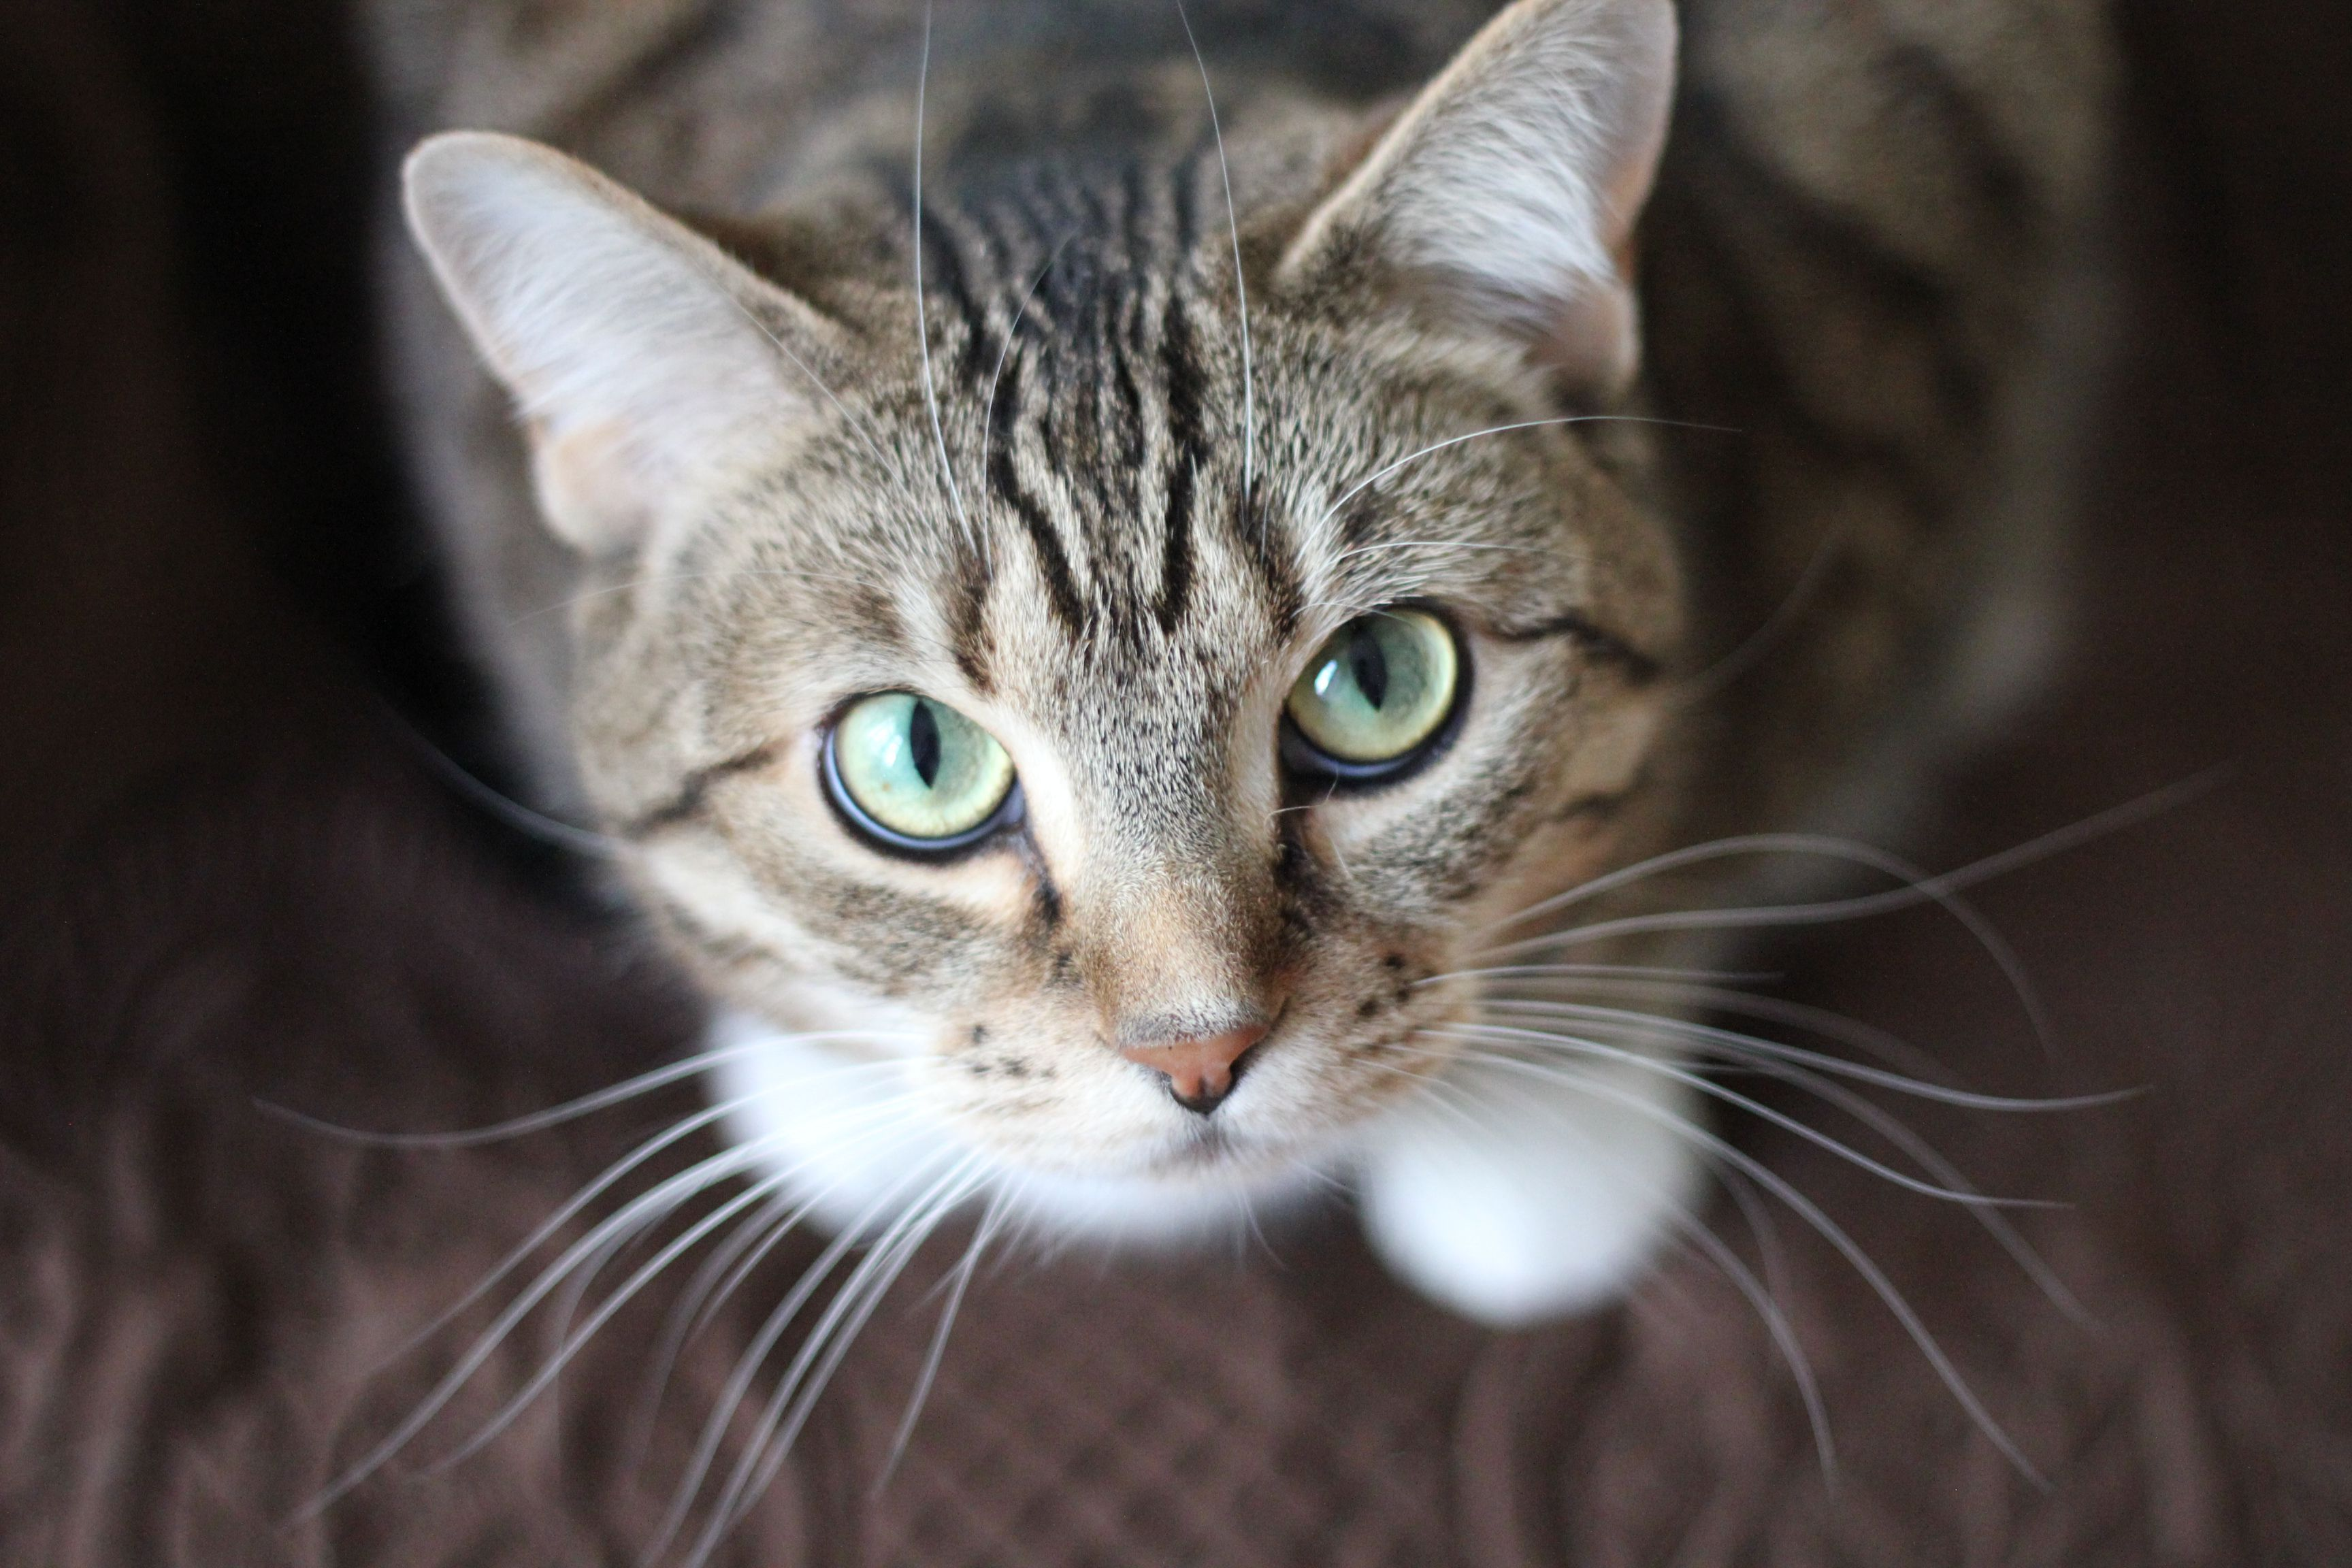 Cats Wallpaper speckled Cat Looking Up